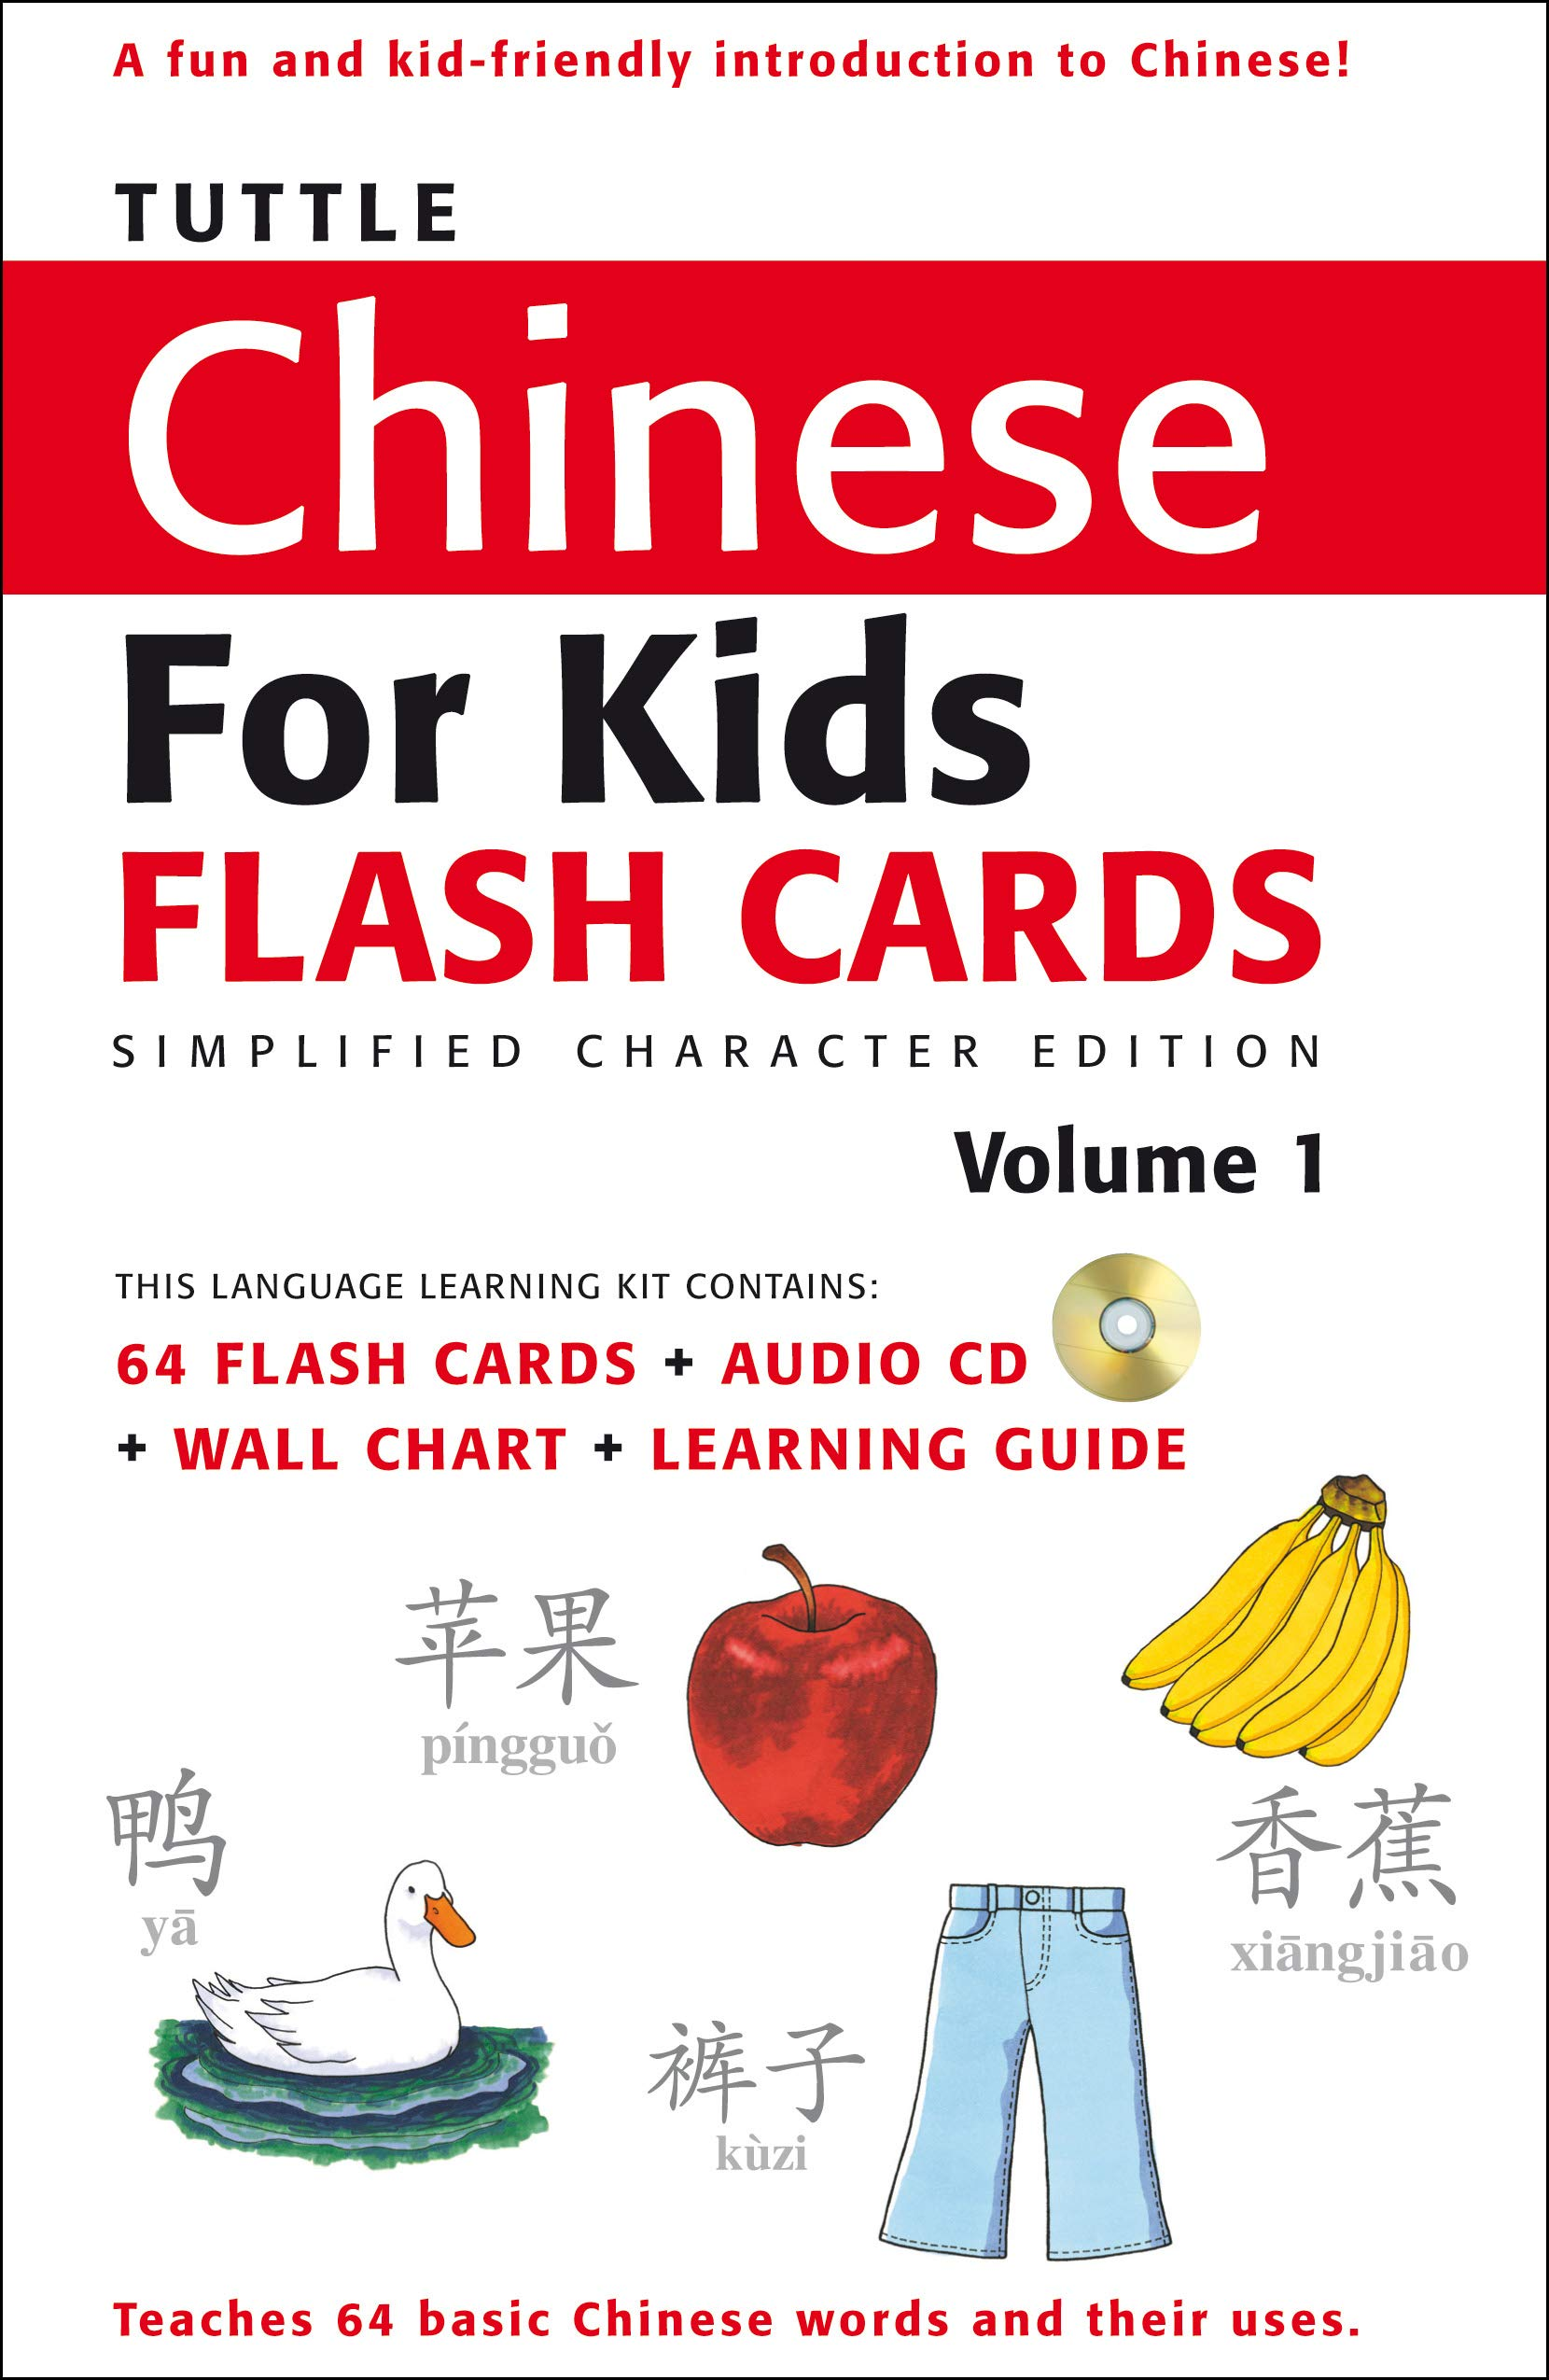 Tuttle Chinese for Kids Flash Cards Kit Vol 1 Simplified Ed ...